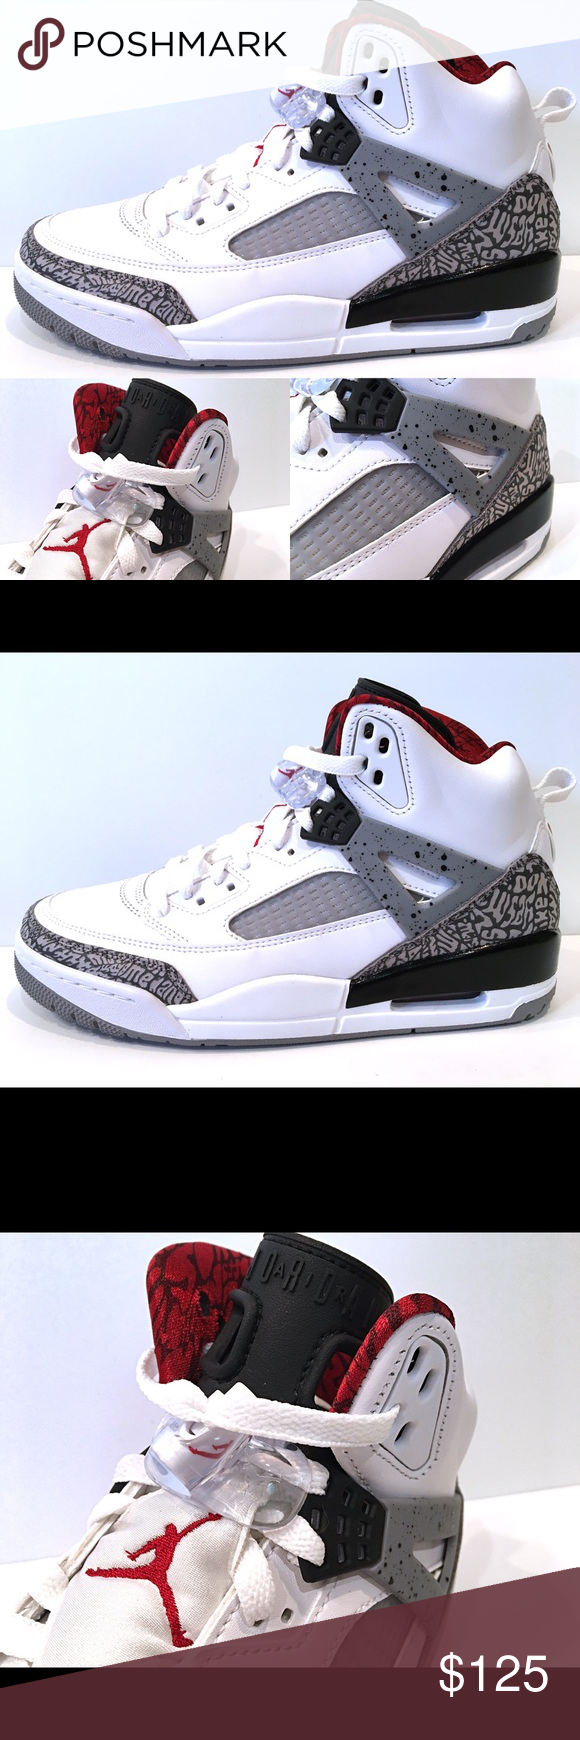 release date: 322ed 39c70 Men s Air Jordan Spizike OG White Cement Grey New Men s Air Jordan Spizike  White Cement Grey  175 New without original box Jordan Shoes Athletic Shoes